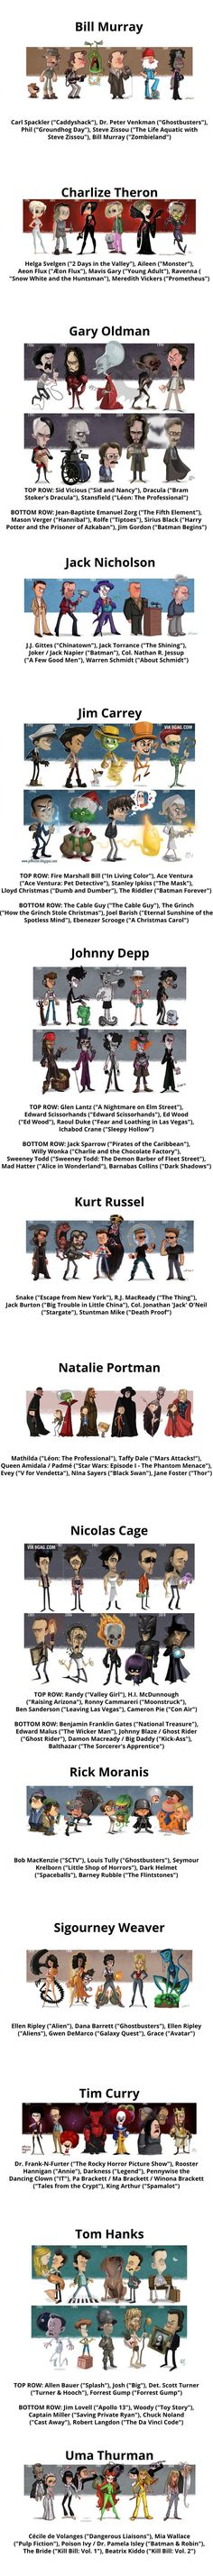 The Evolution of Actors by Jeff Victor  - Very awesome and well done. BM.